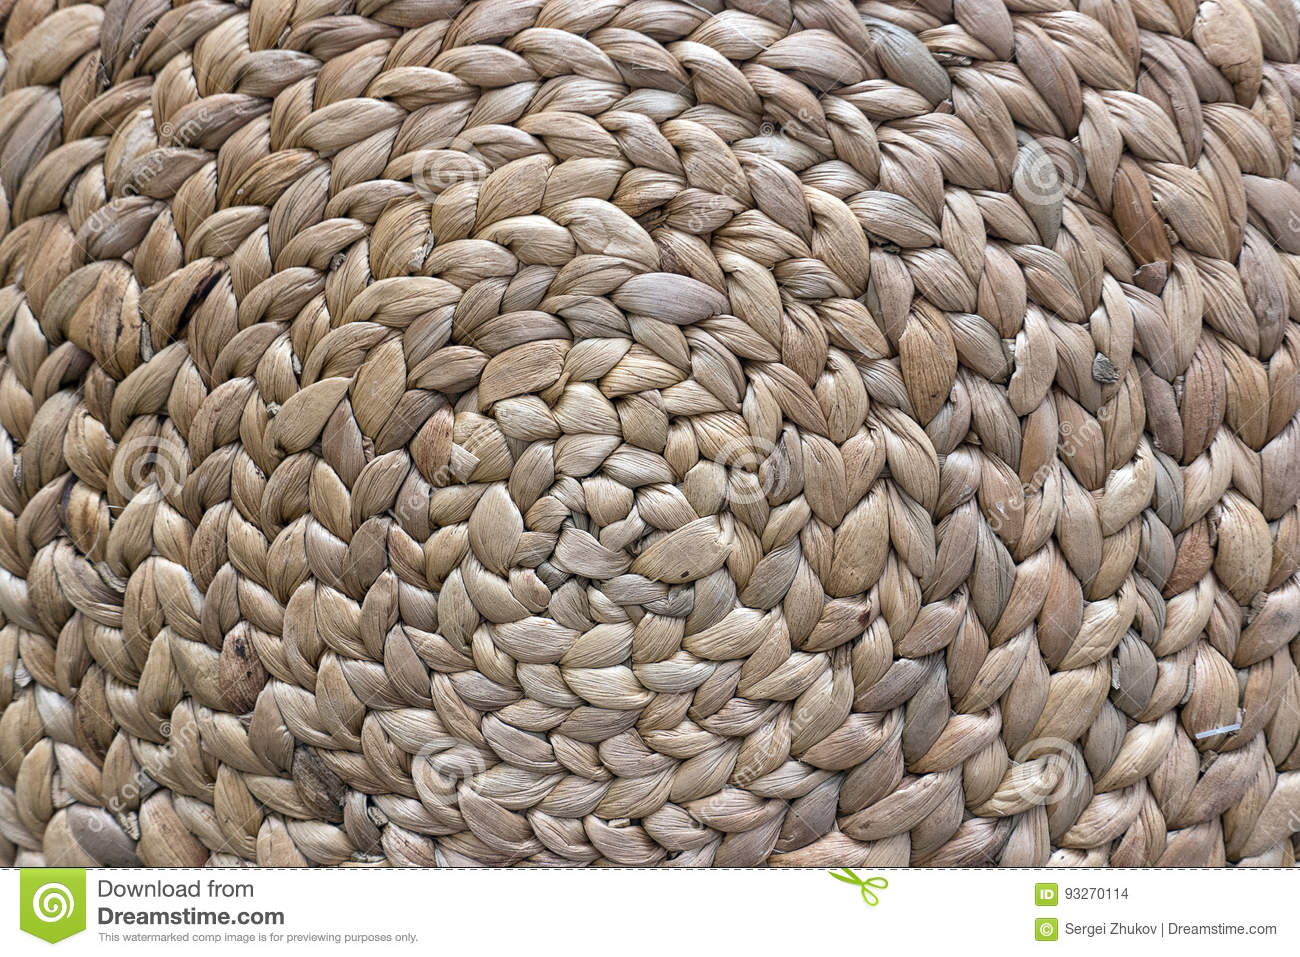 d2e0db4630503 Wicker Basket Structure Texture Stock Photo - Image of decoration ...